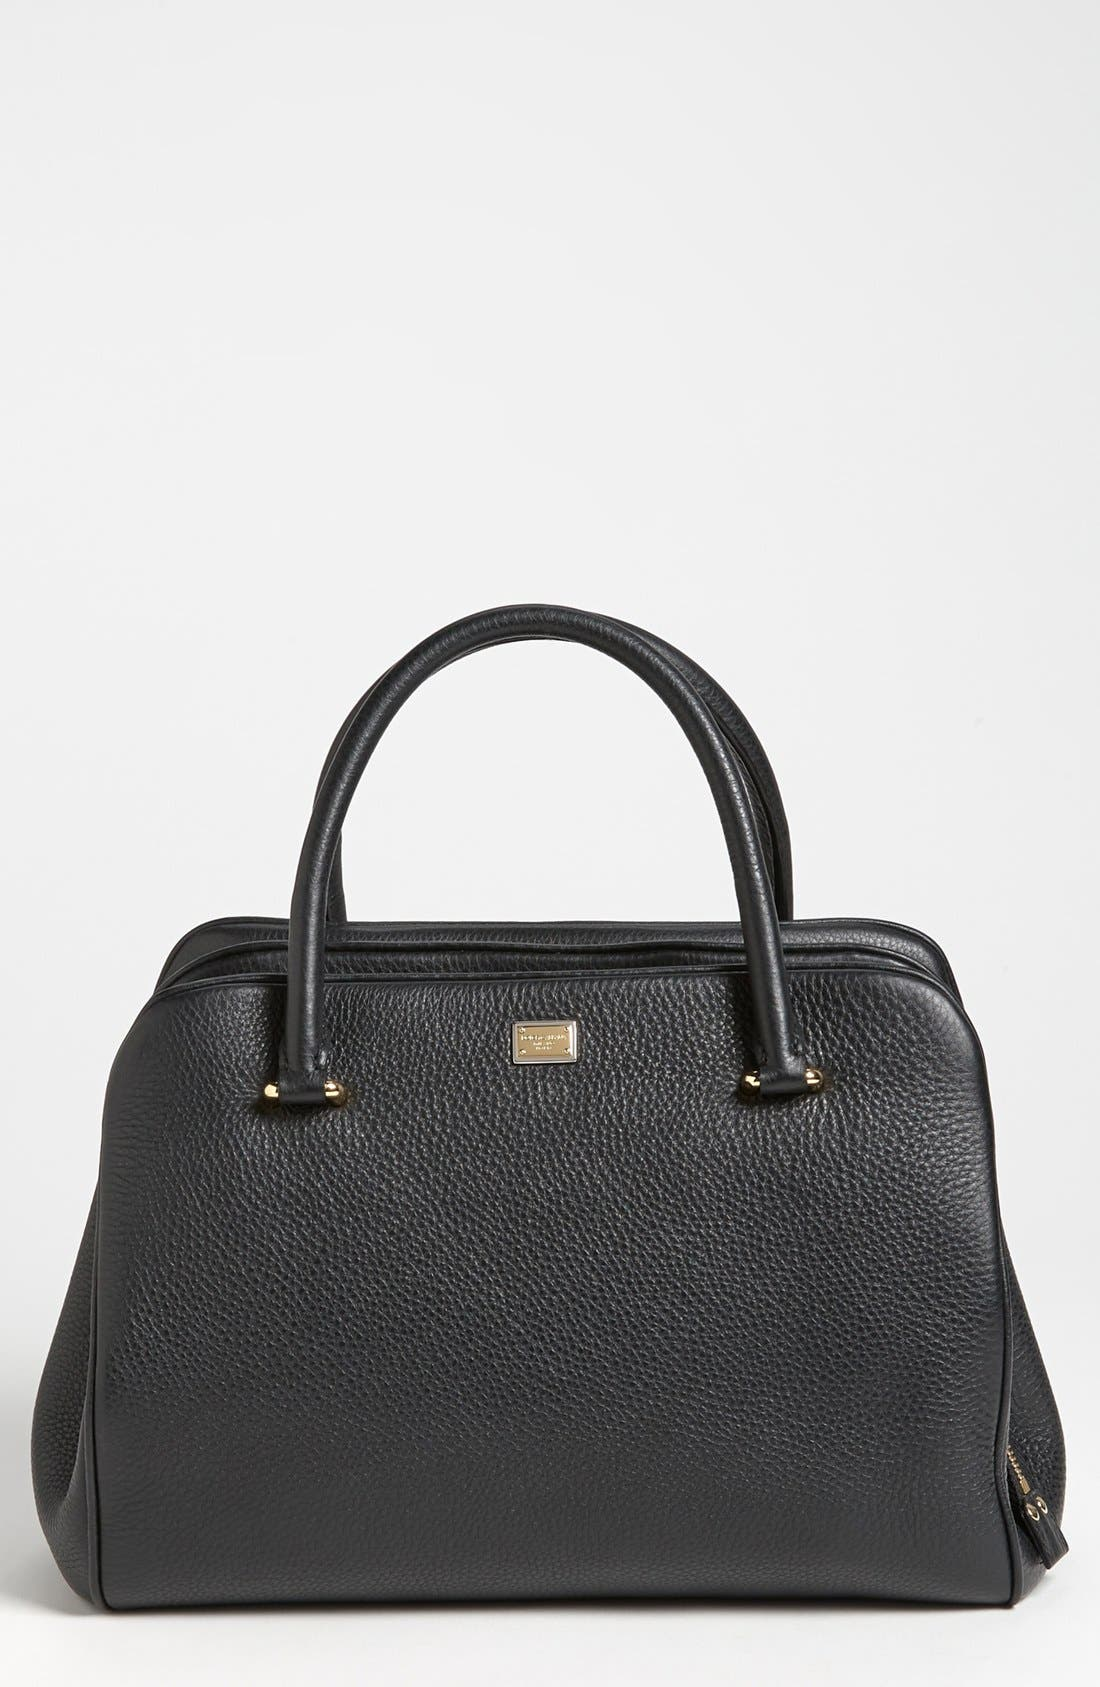 Alternate Image 1 Selected - Dolce&Gabbana 'Miss Lily' Leather Handbag